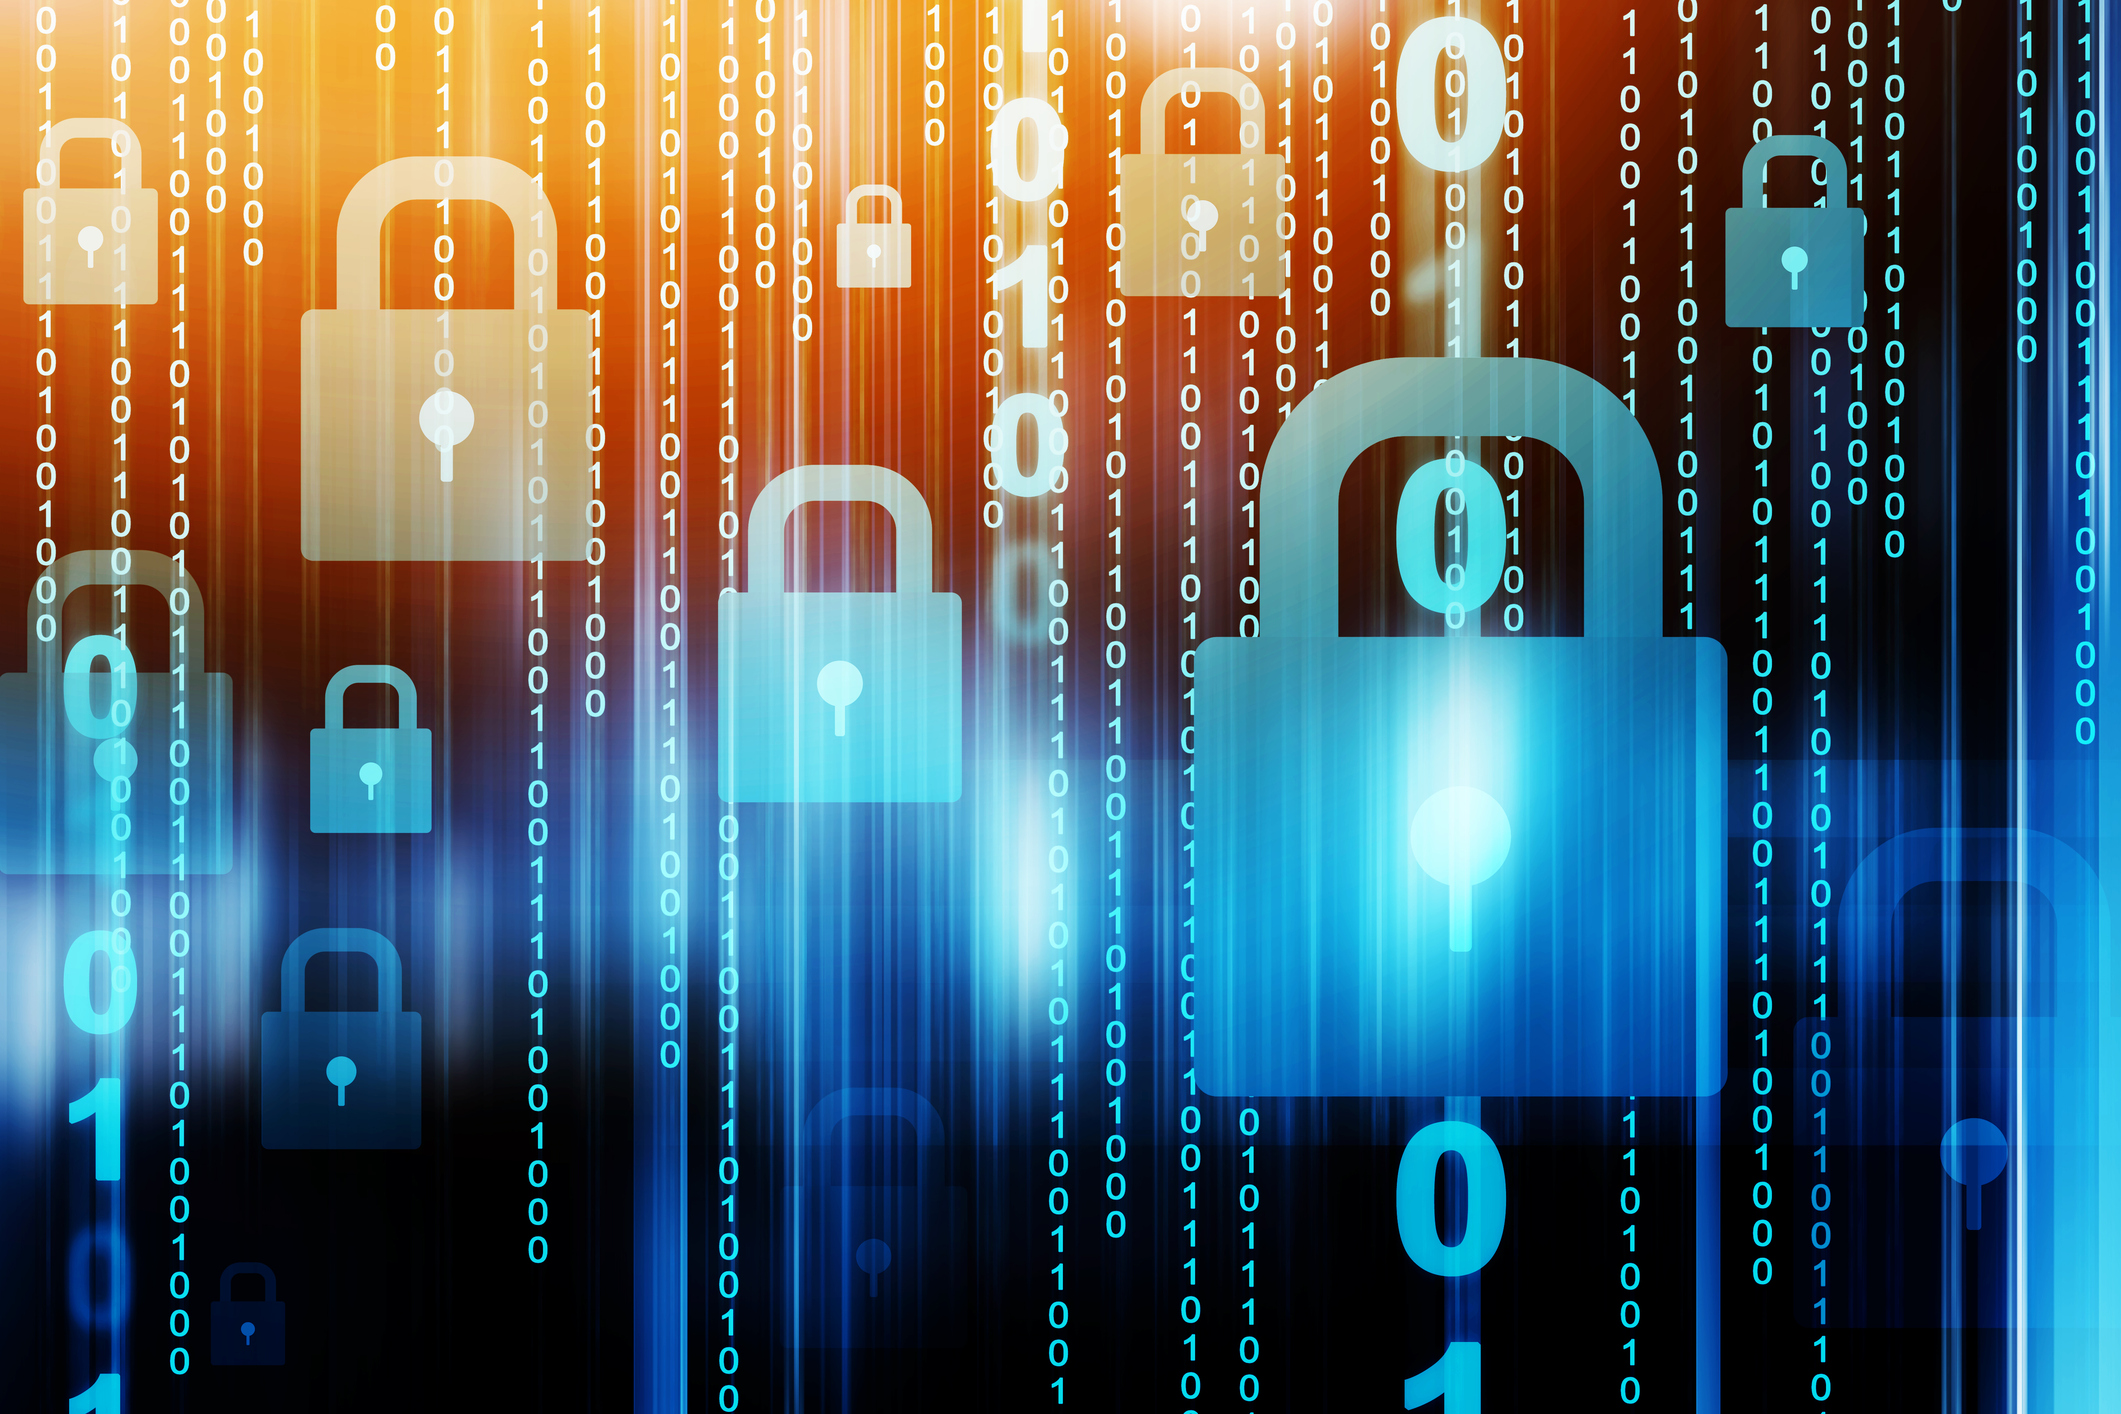 The Top 20 Critical Security Controls help reduce Cybersecurity Risk